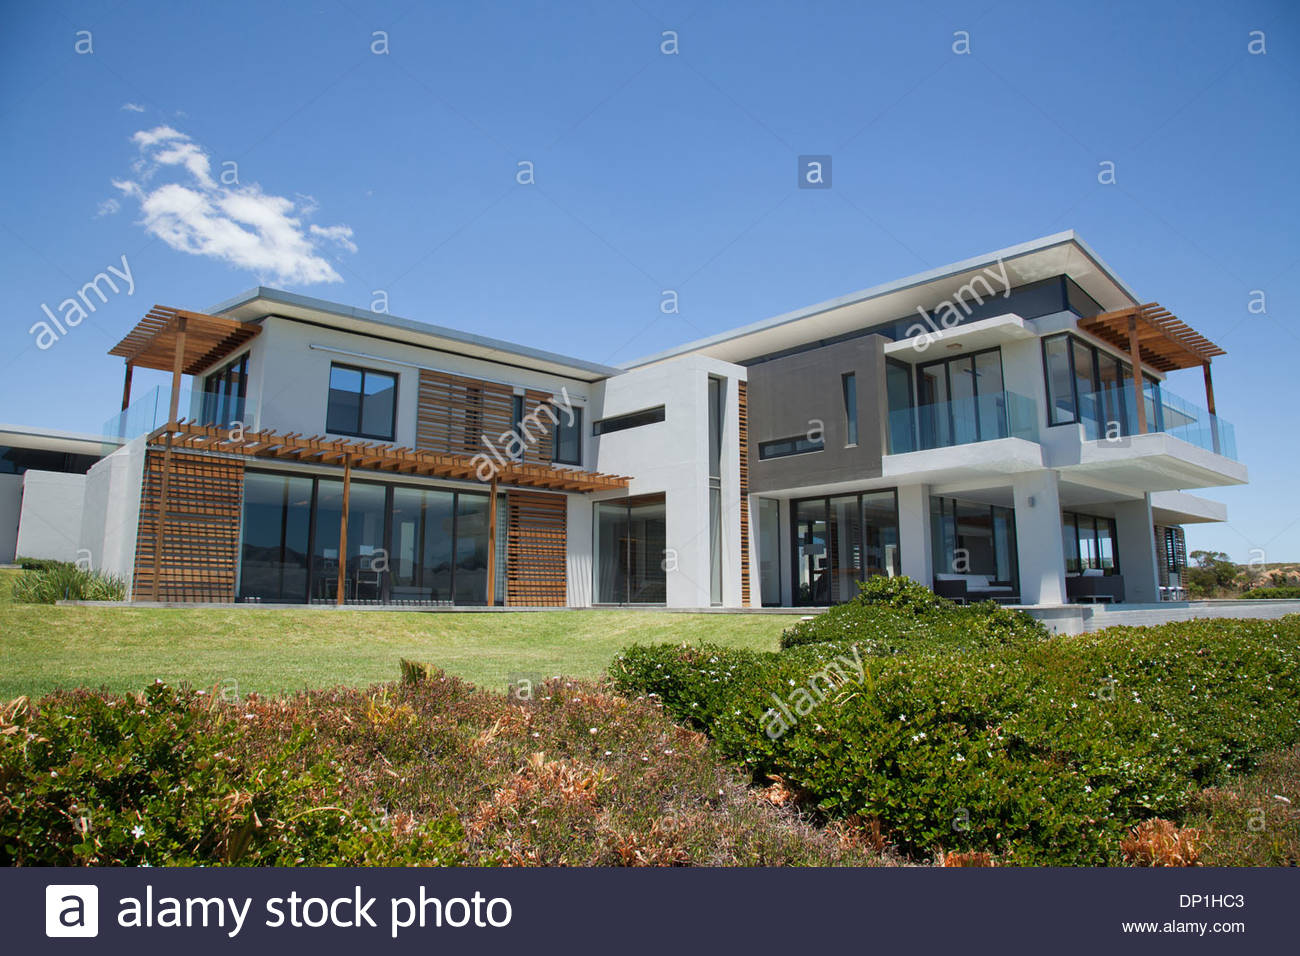 Modern house and yard - Stock Image